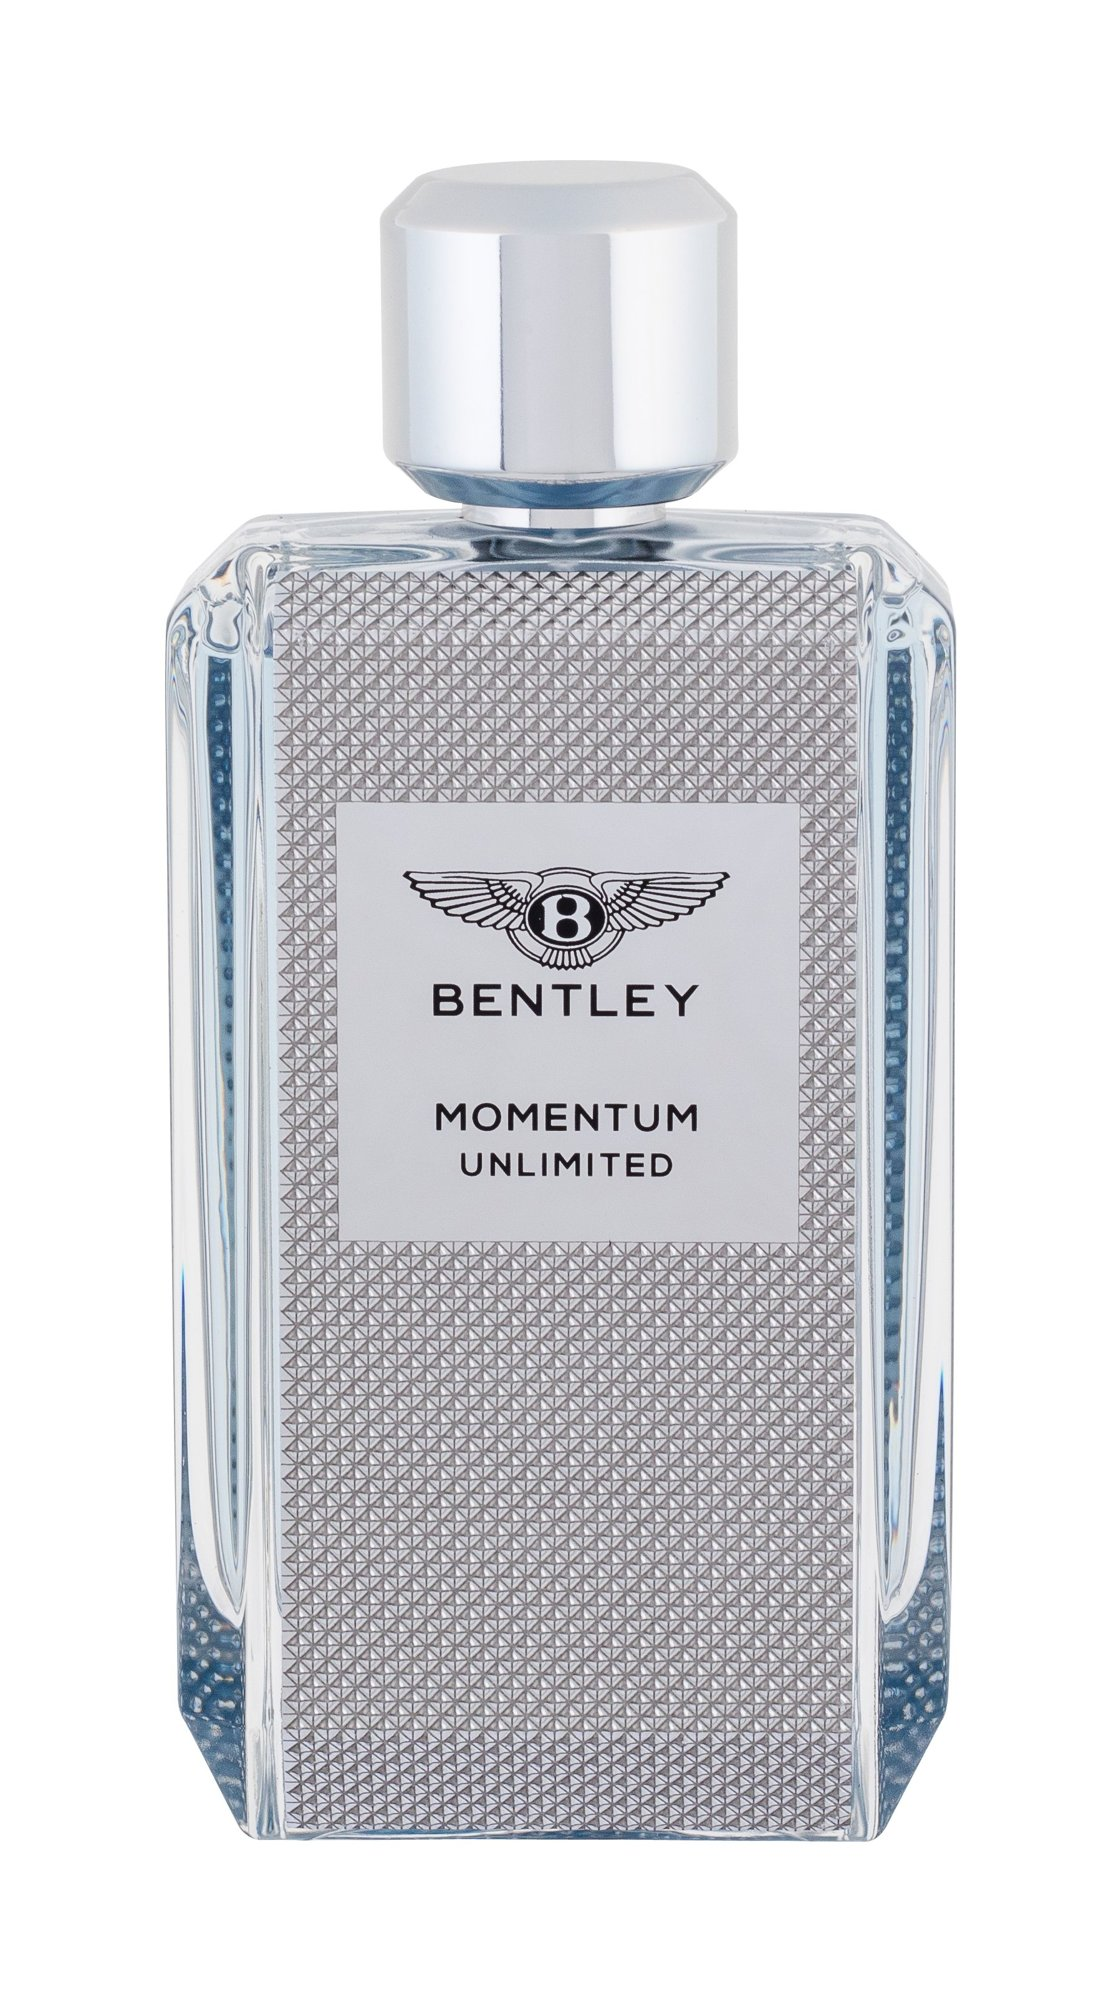 Bentley Momentum Unlimited Eau de Toilette 100ml